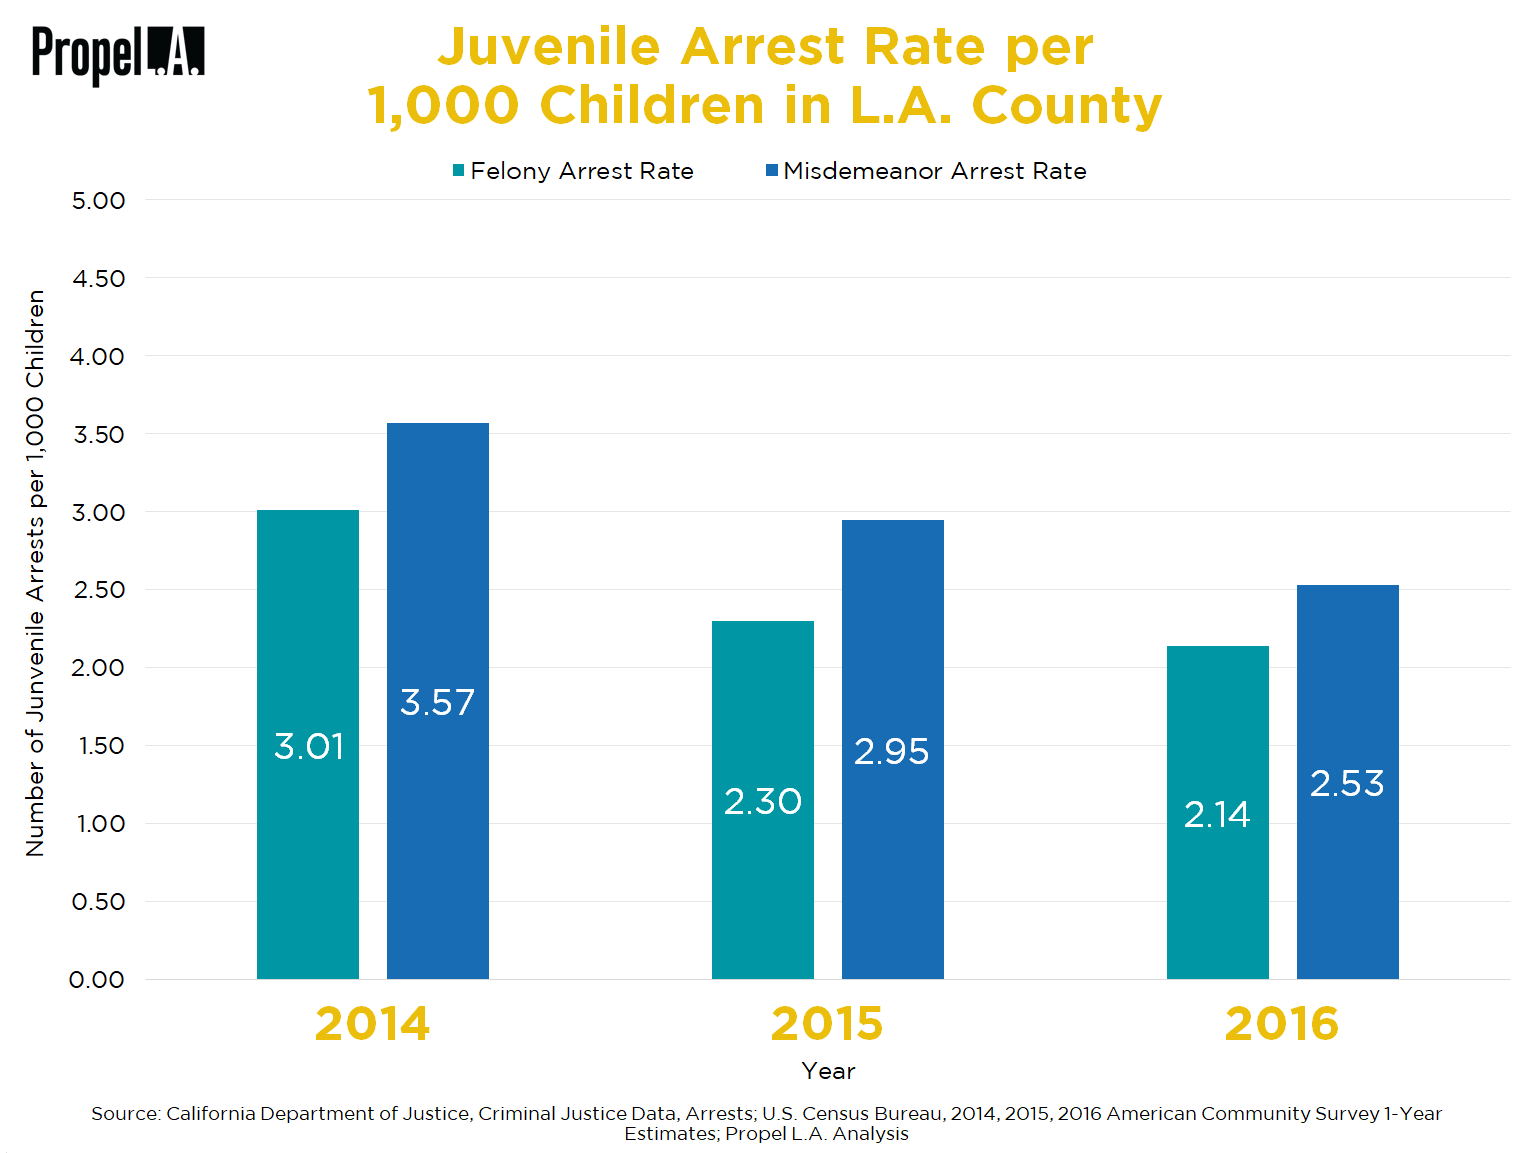 Juvenile Arrest Rate